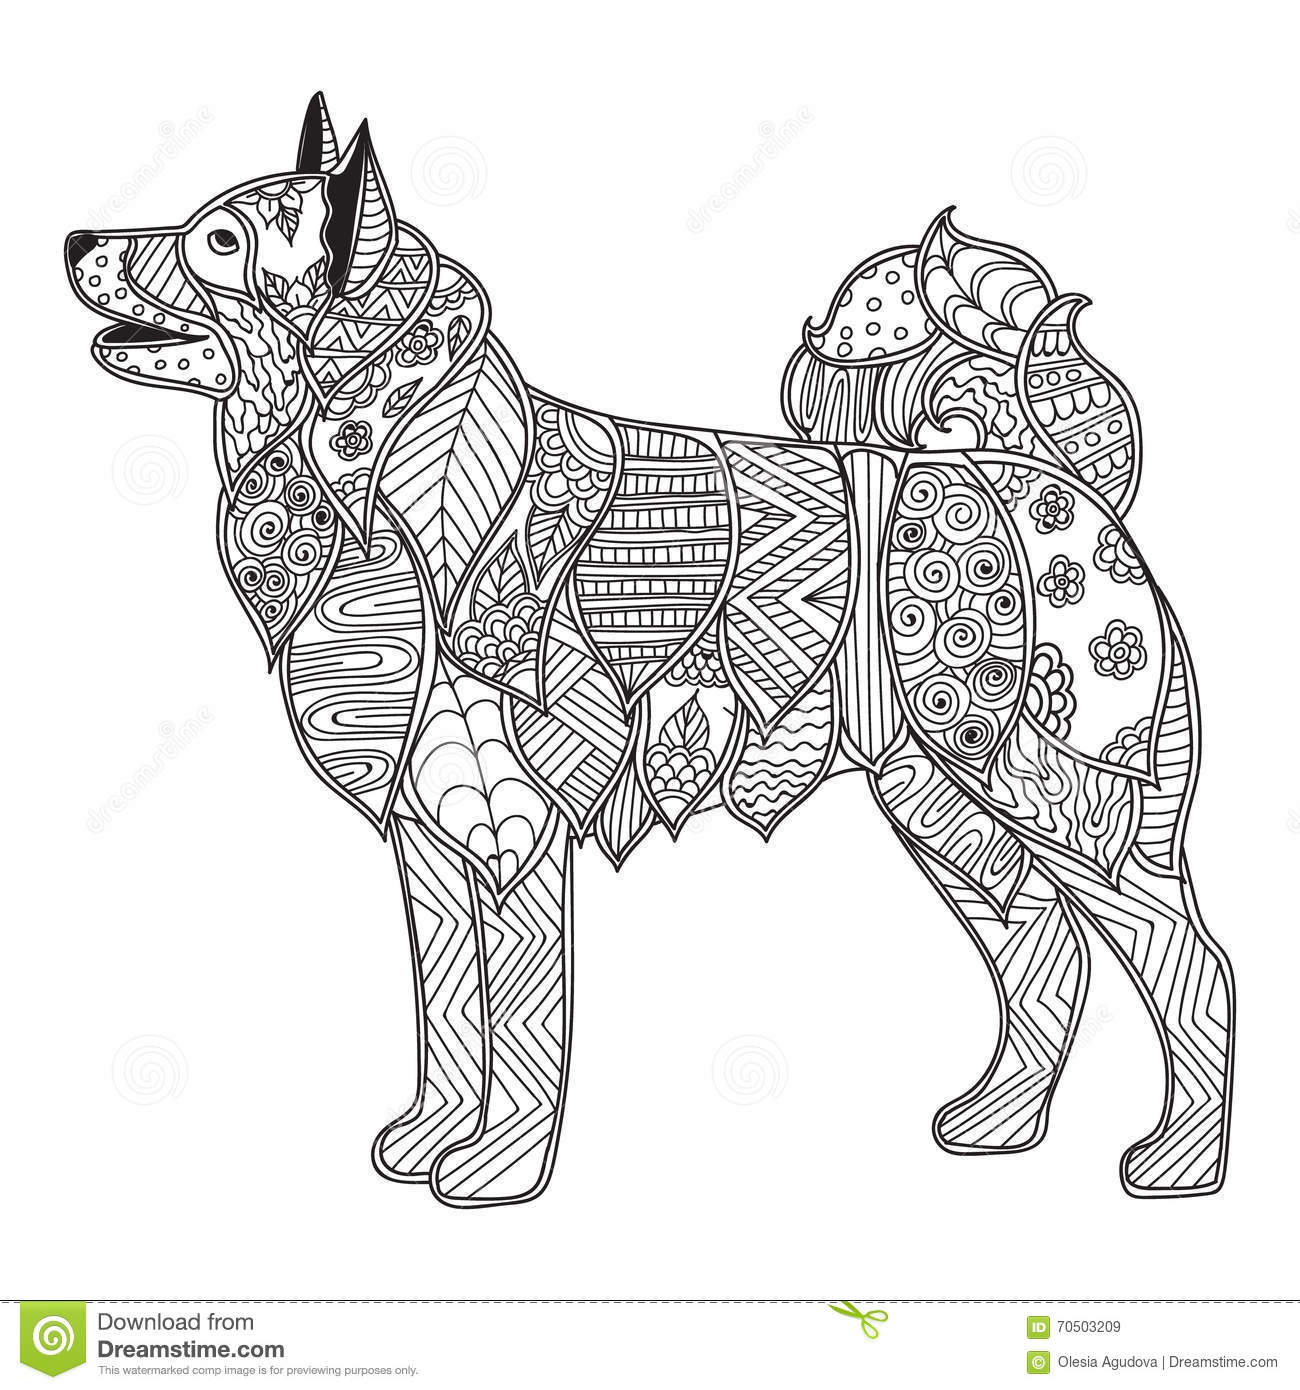 Stress Coloring Pages Animals : Dog adult antistress or children coloring page cartoon